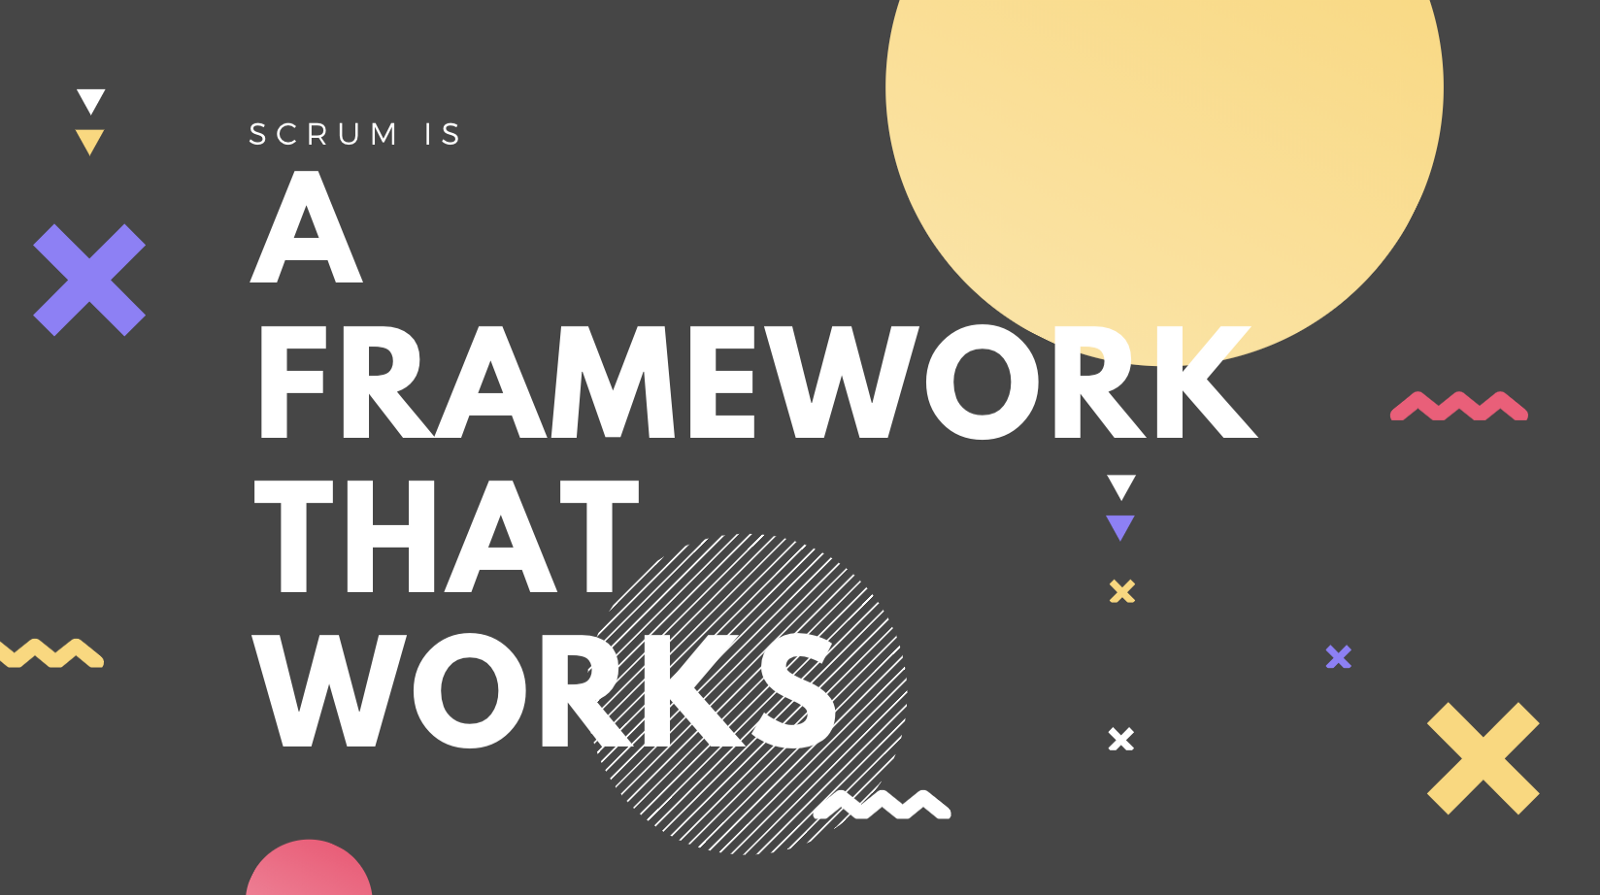 scrum is a framework that words graphic on gray background with shapes